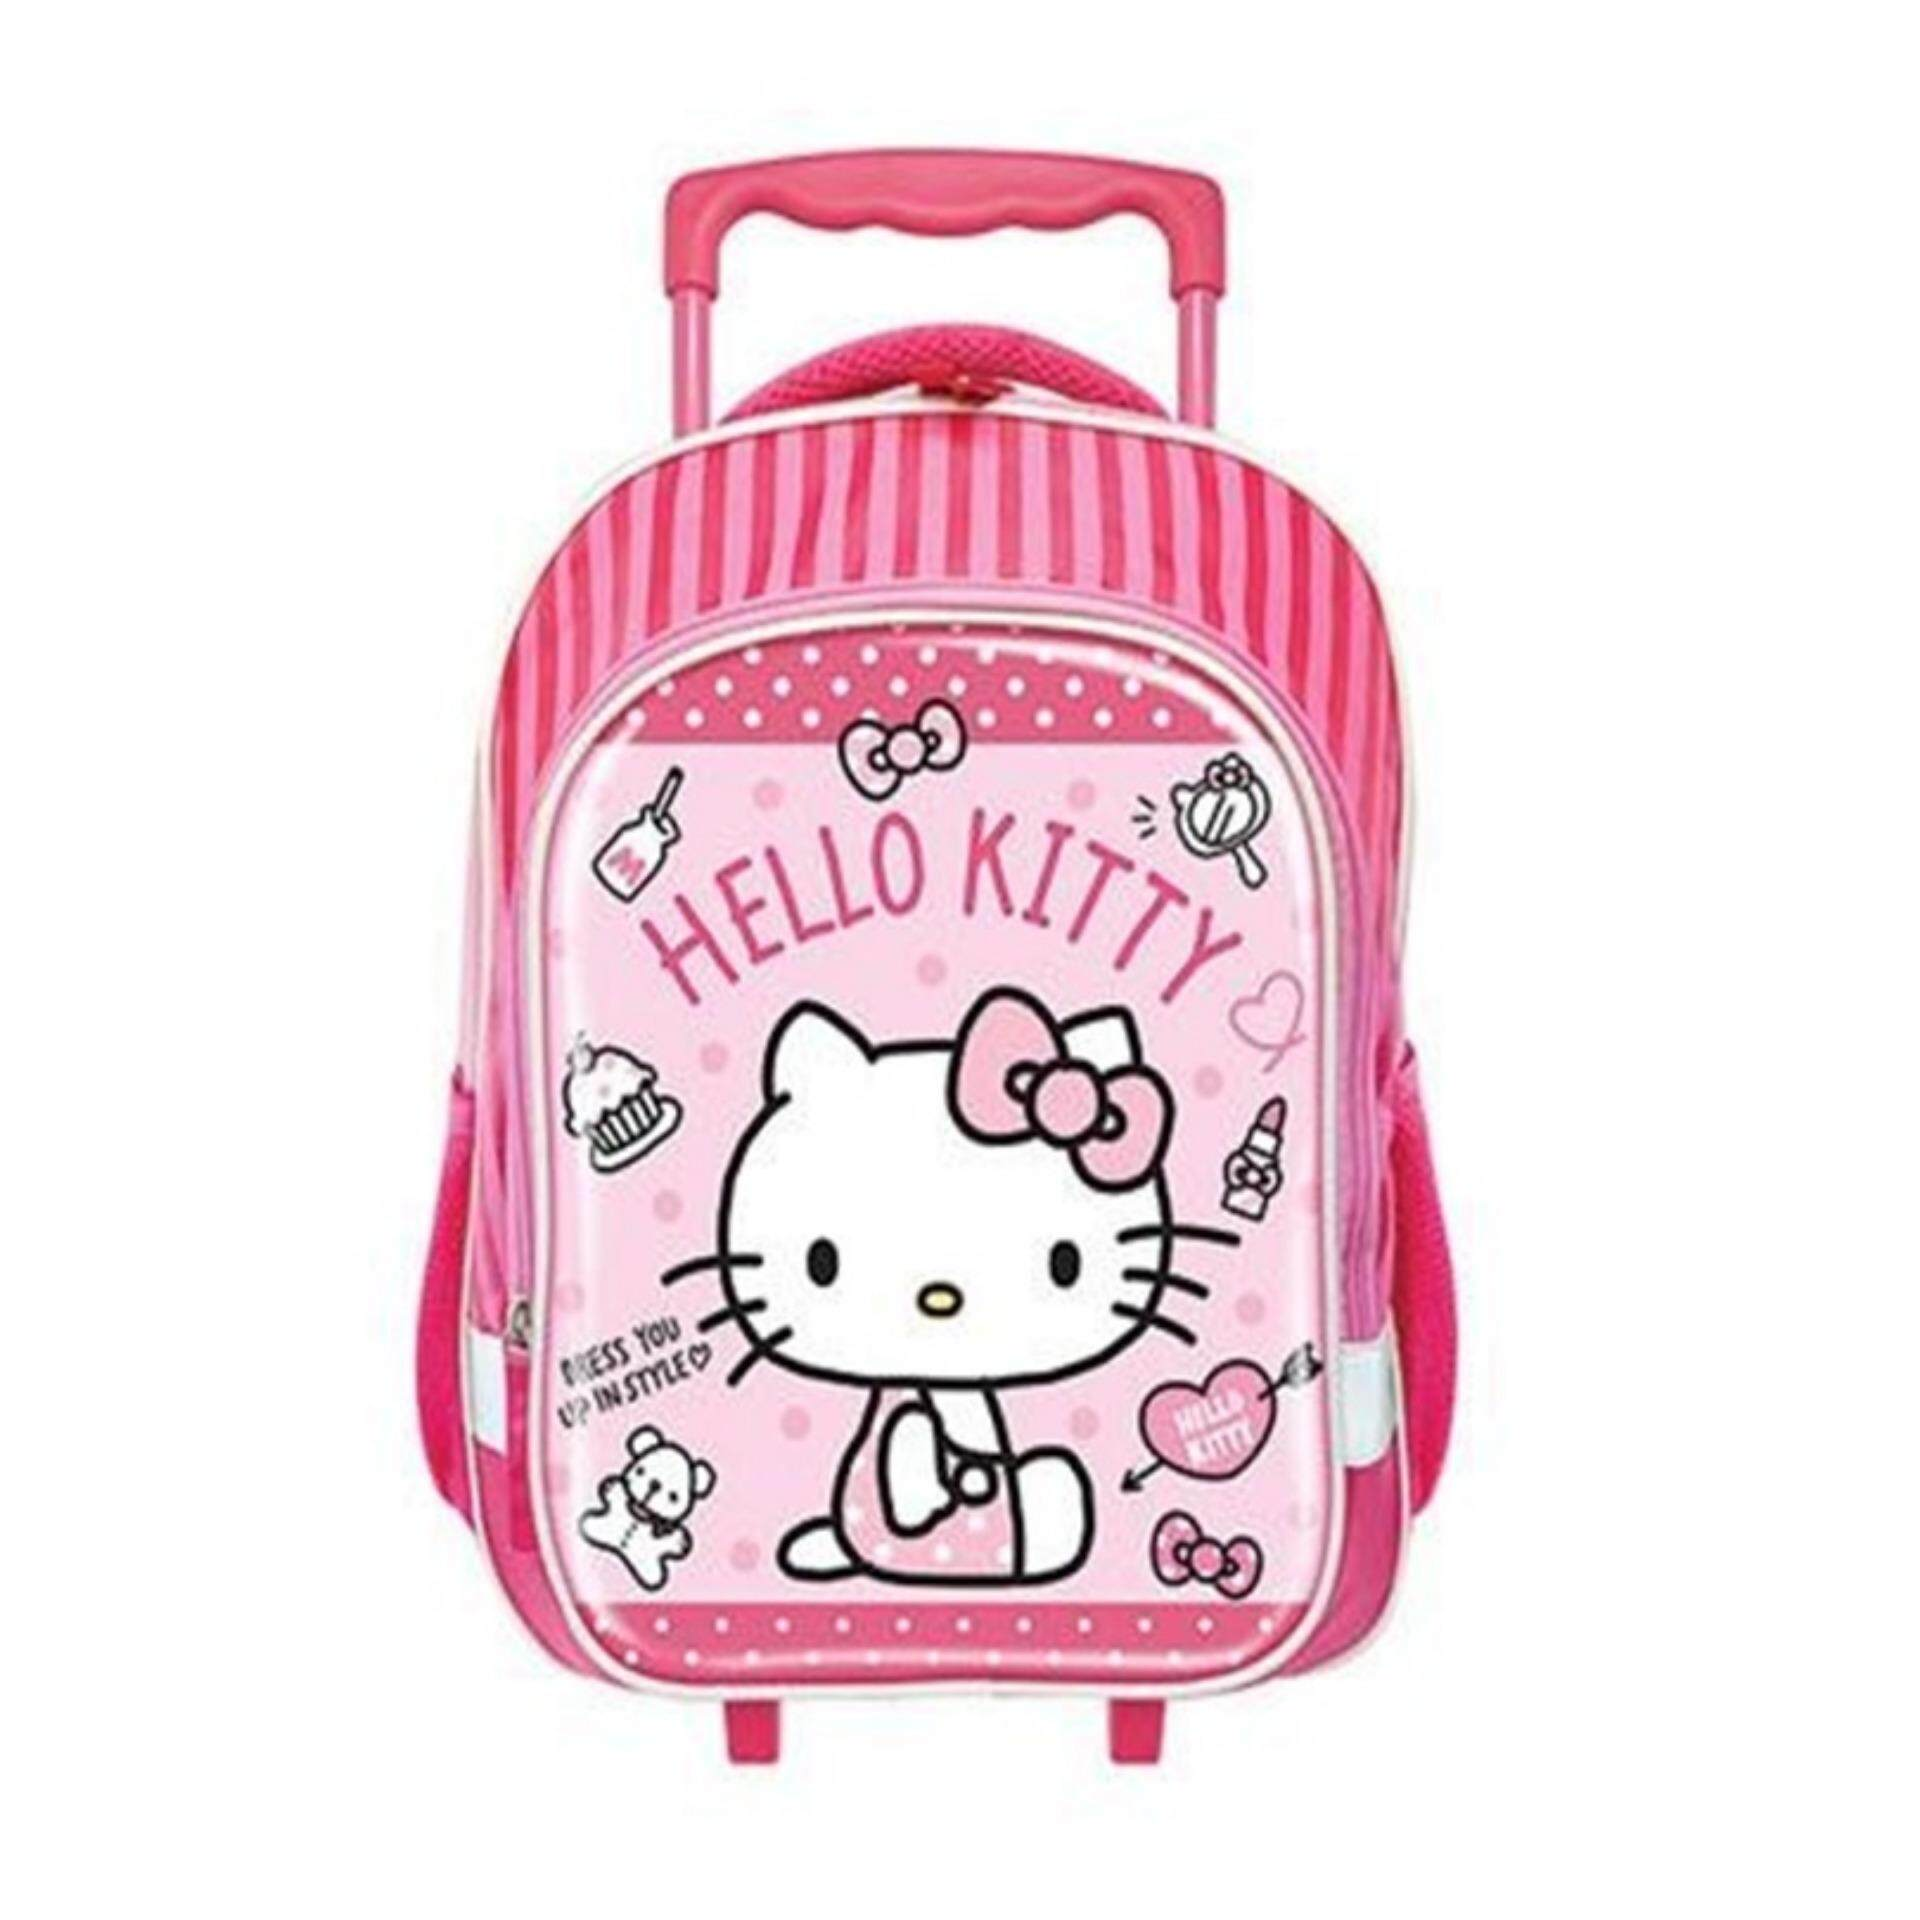 Sanrio Hello Kitty Pre School Kindergarten Nursery Kids Children School Trolley Bag - Pink Colour